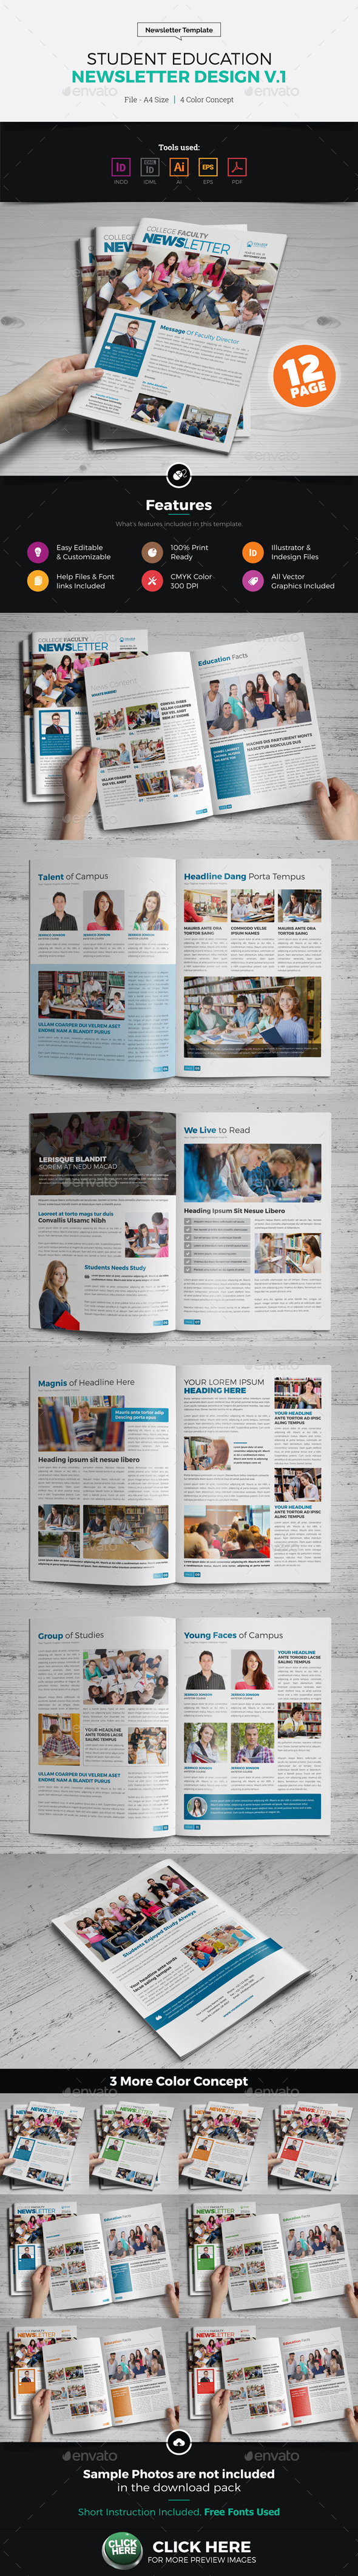 Student Education Newsletter Design - Newsletters Print Templates